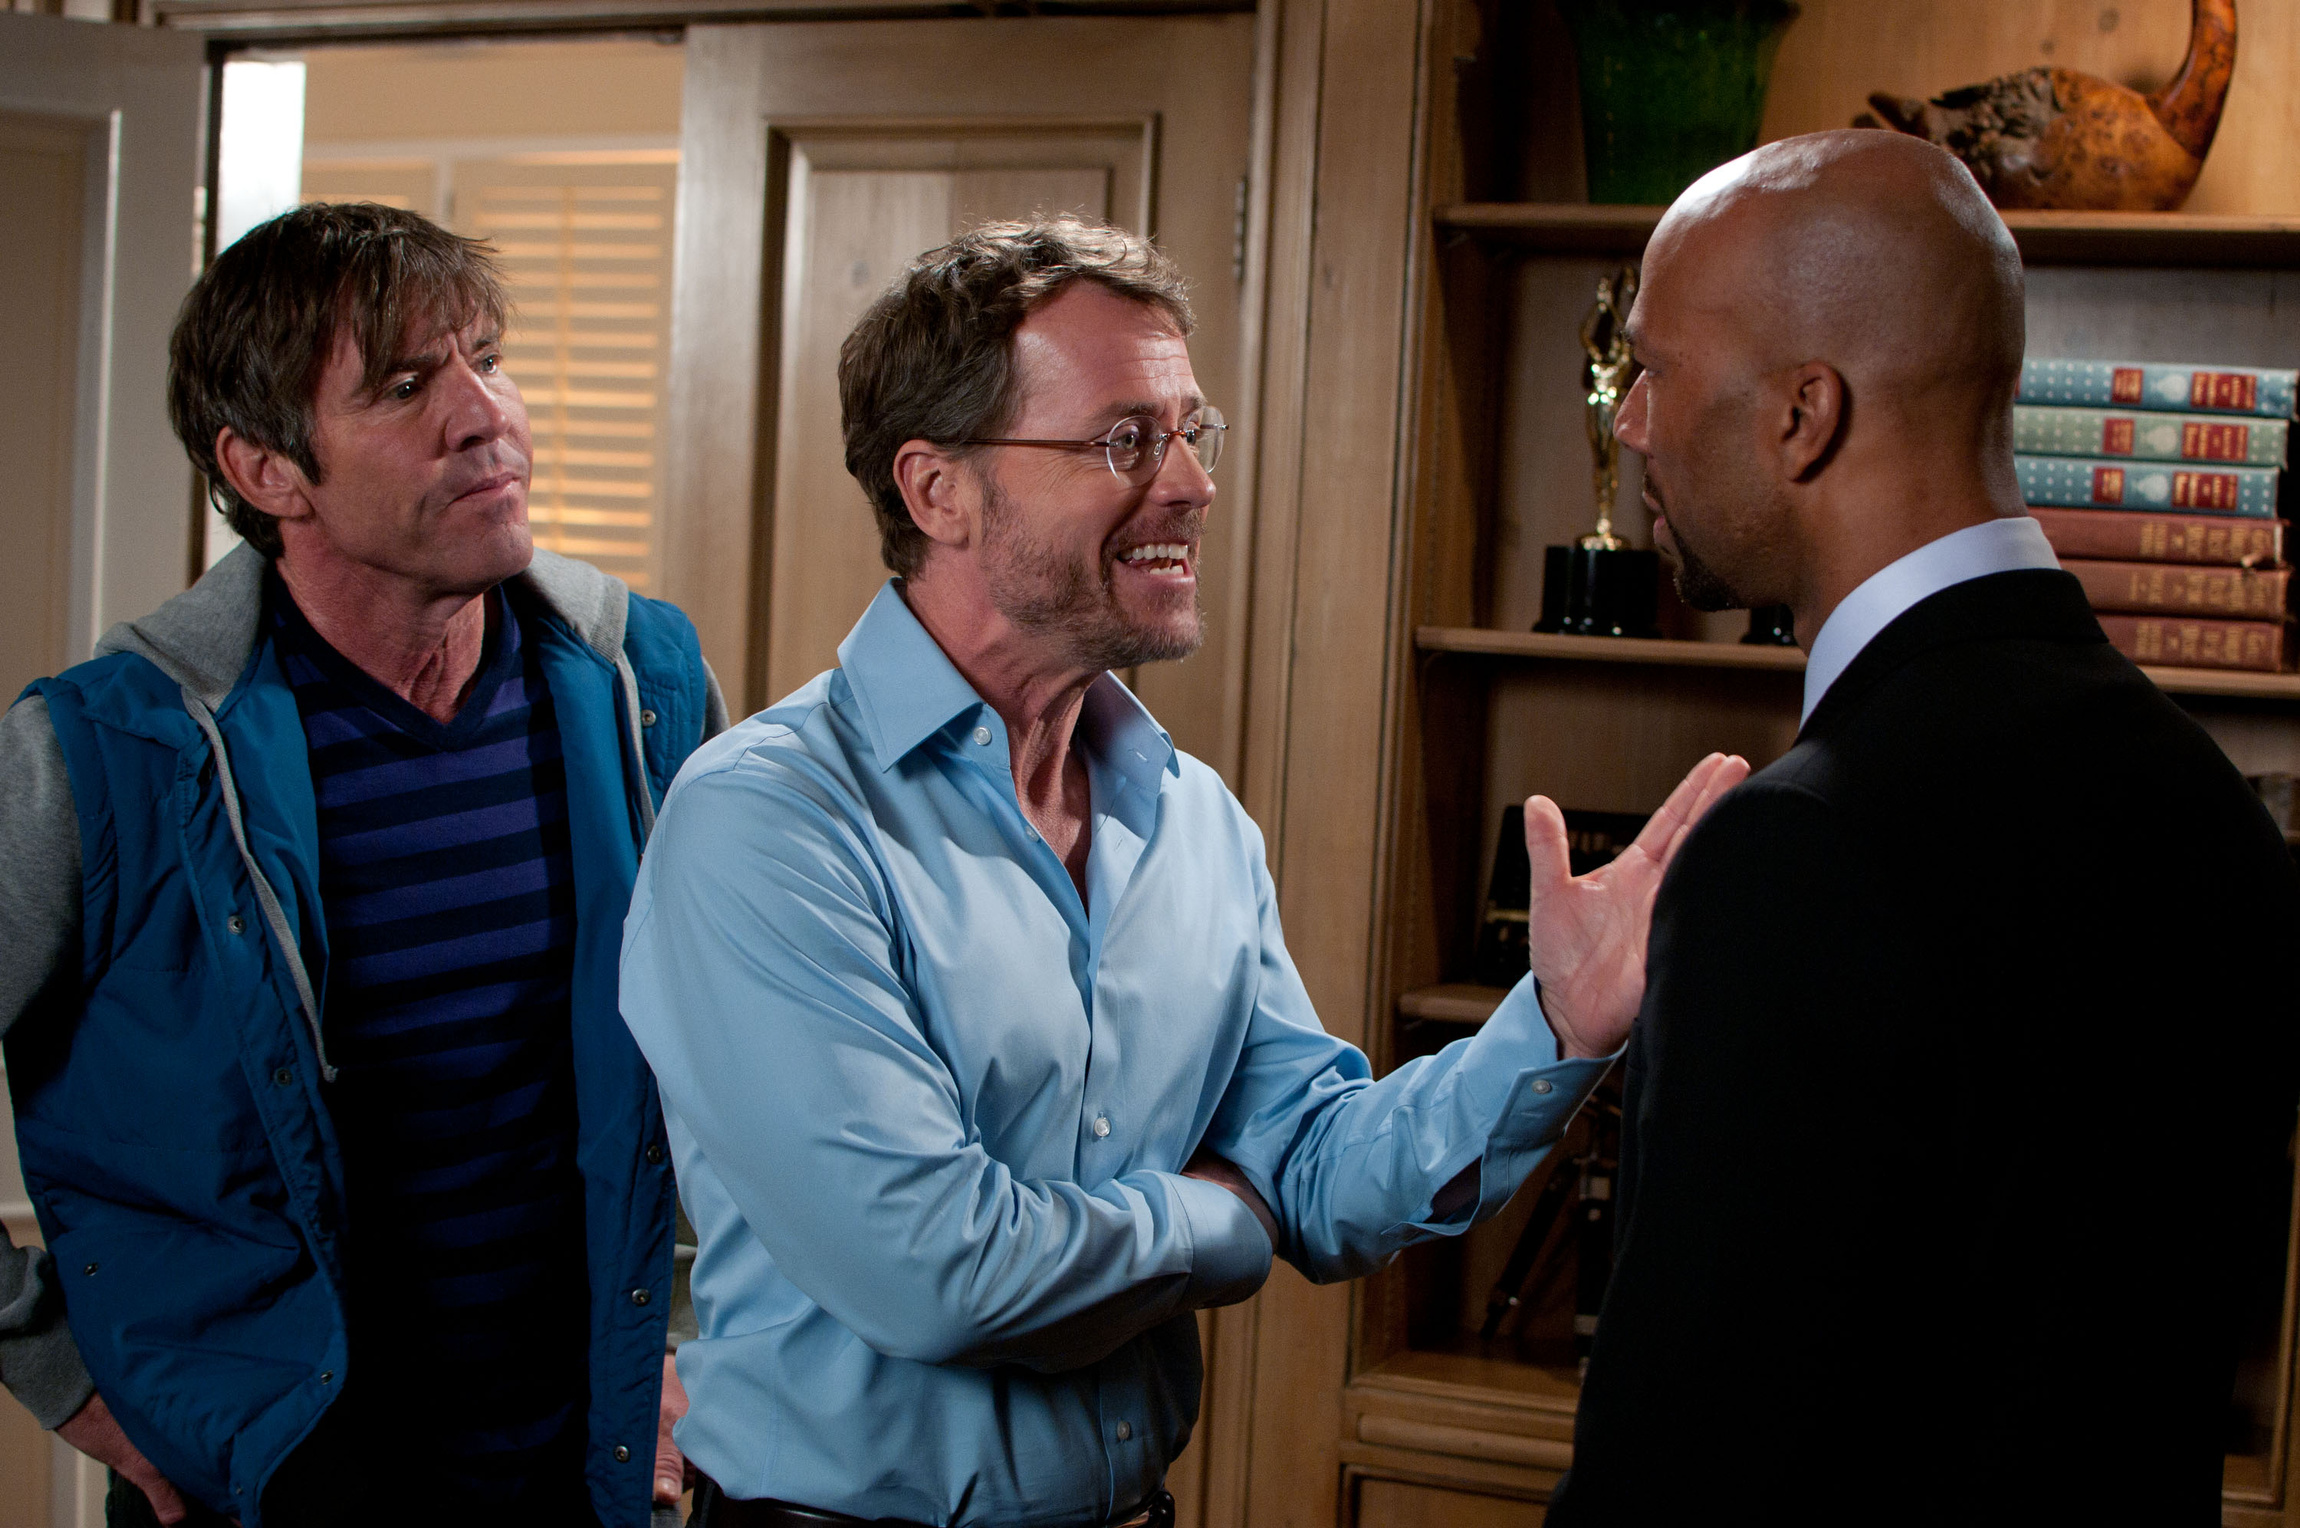 """Dennis Quaid, Greg Kinnear and Common star in a scene from the movie """"Movie 43."""" (CNS photo/Relativity)"""